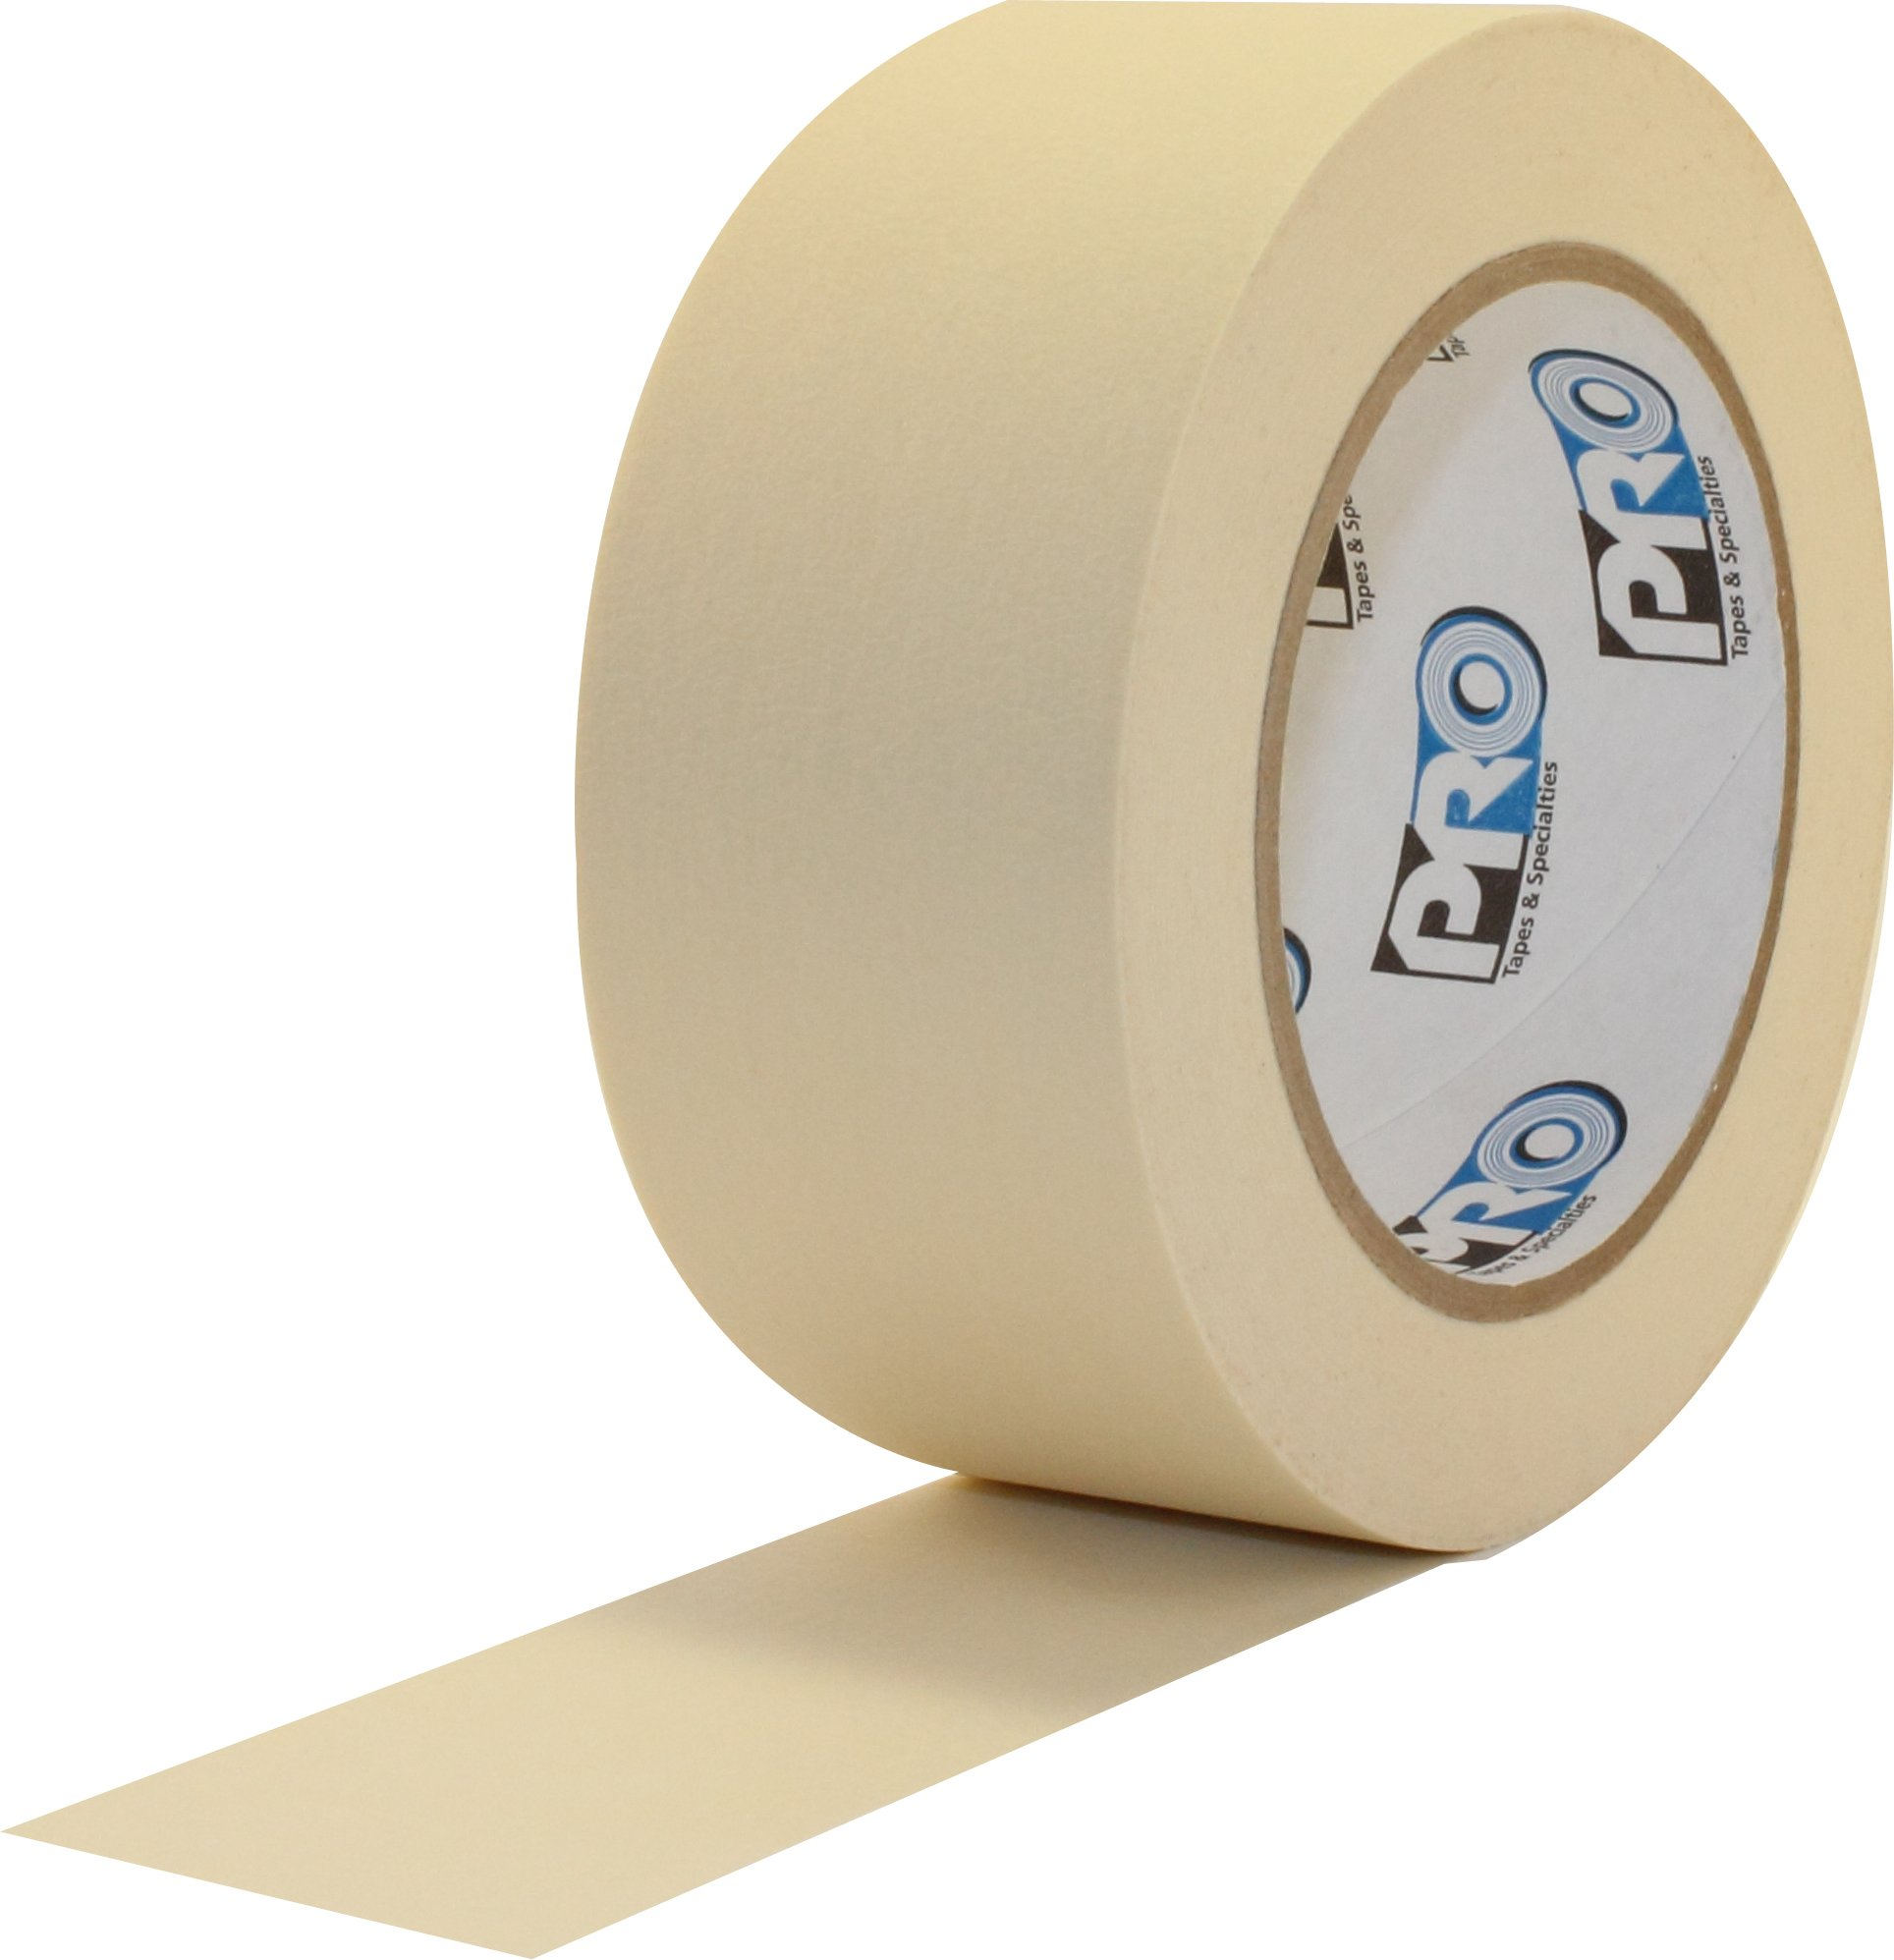 ProTapes Pro 795 Crepe Paper General Purpose Masking Tape, 60 yds Length x 2'' Width, Tan (Pack of 24)